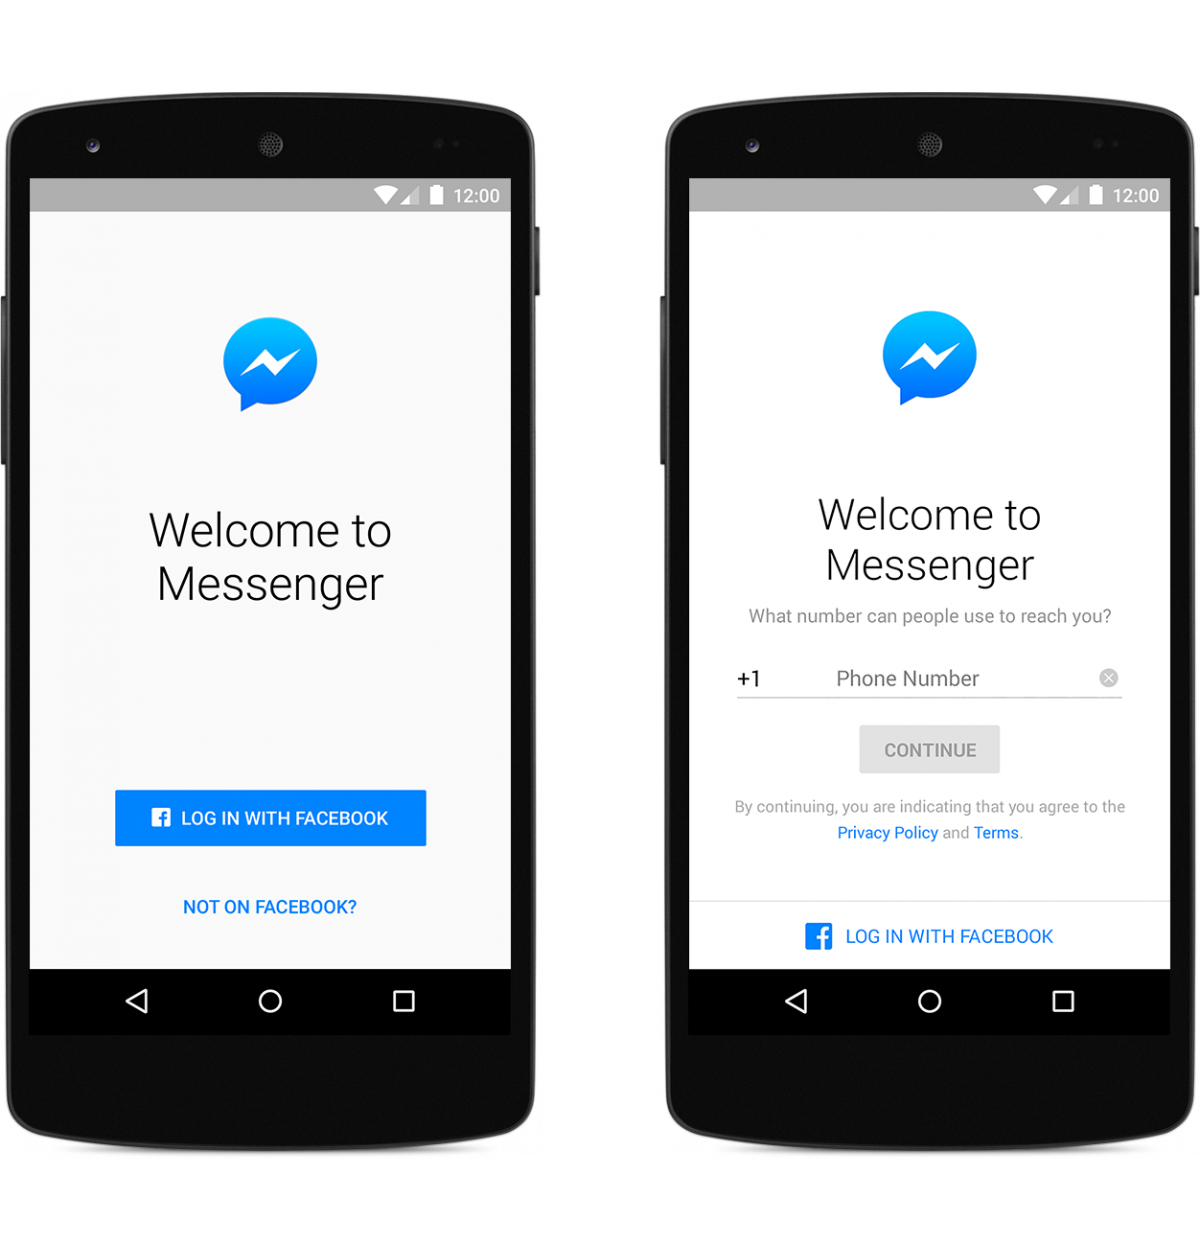 Top 20 Facebook Messenger Tips & Tricks You May Not Know - Kim Garst